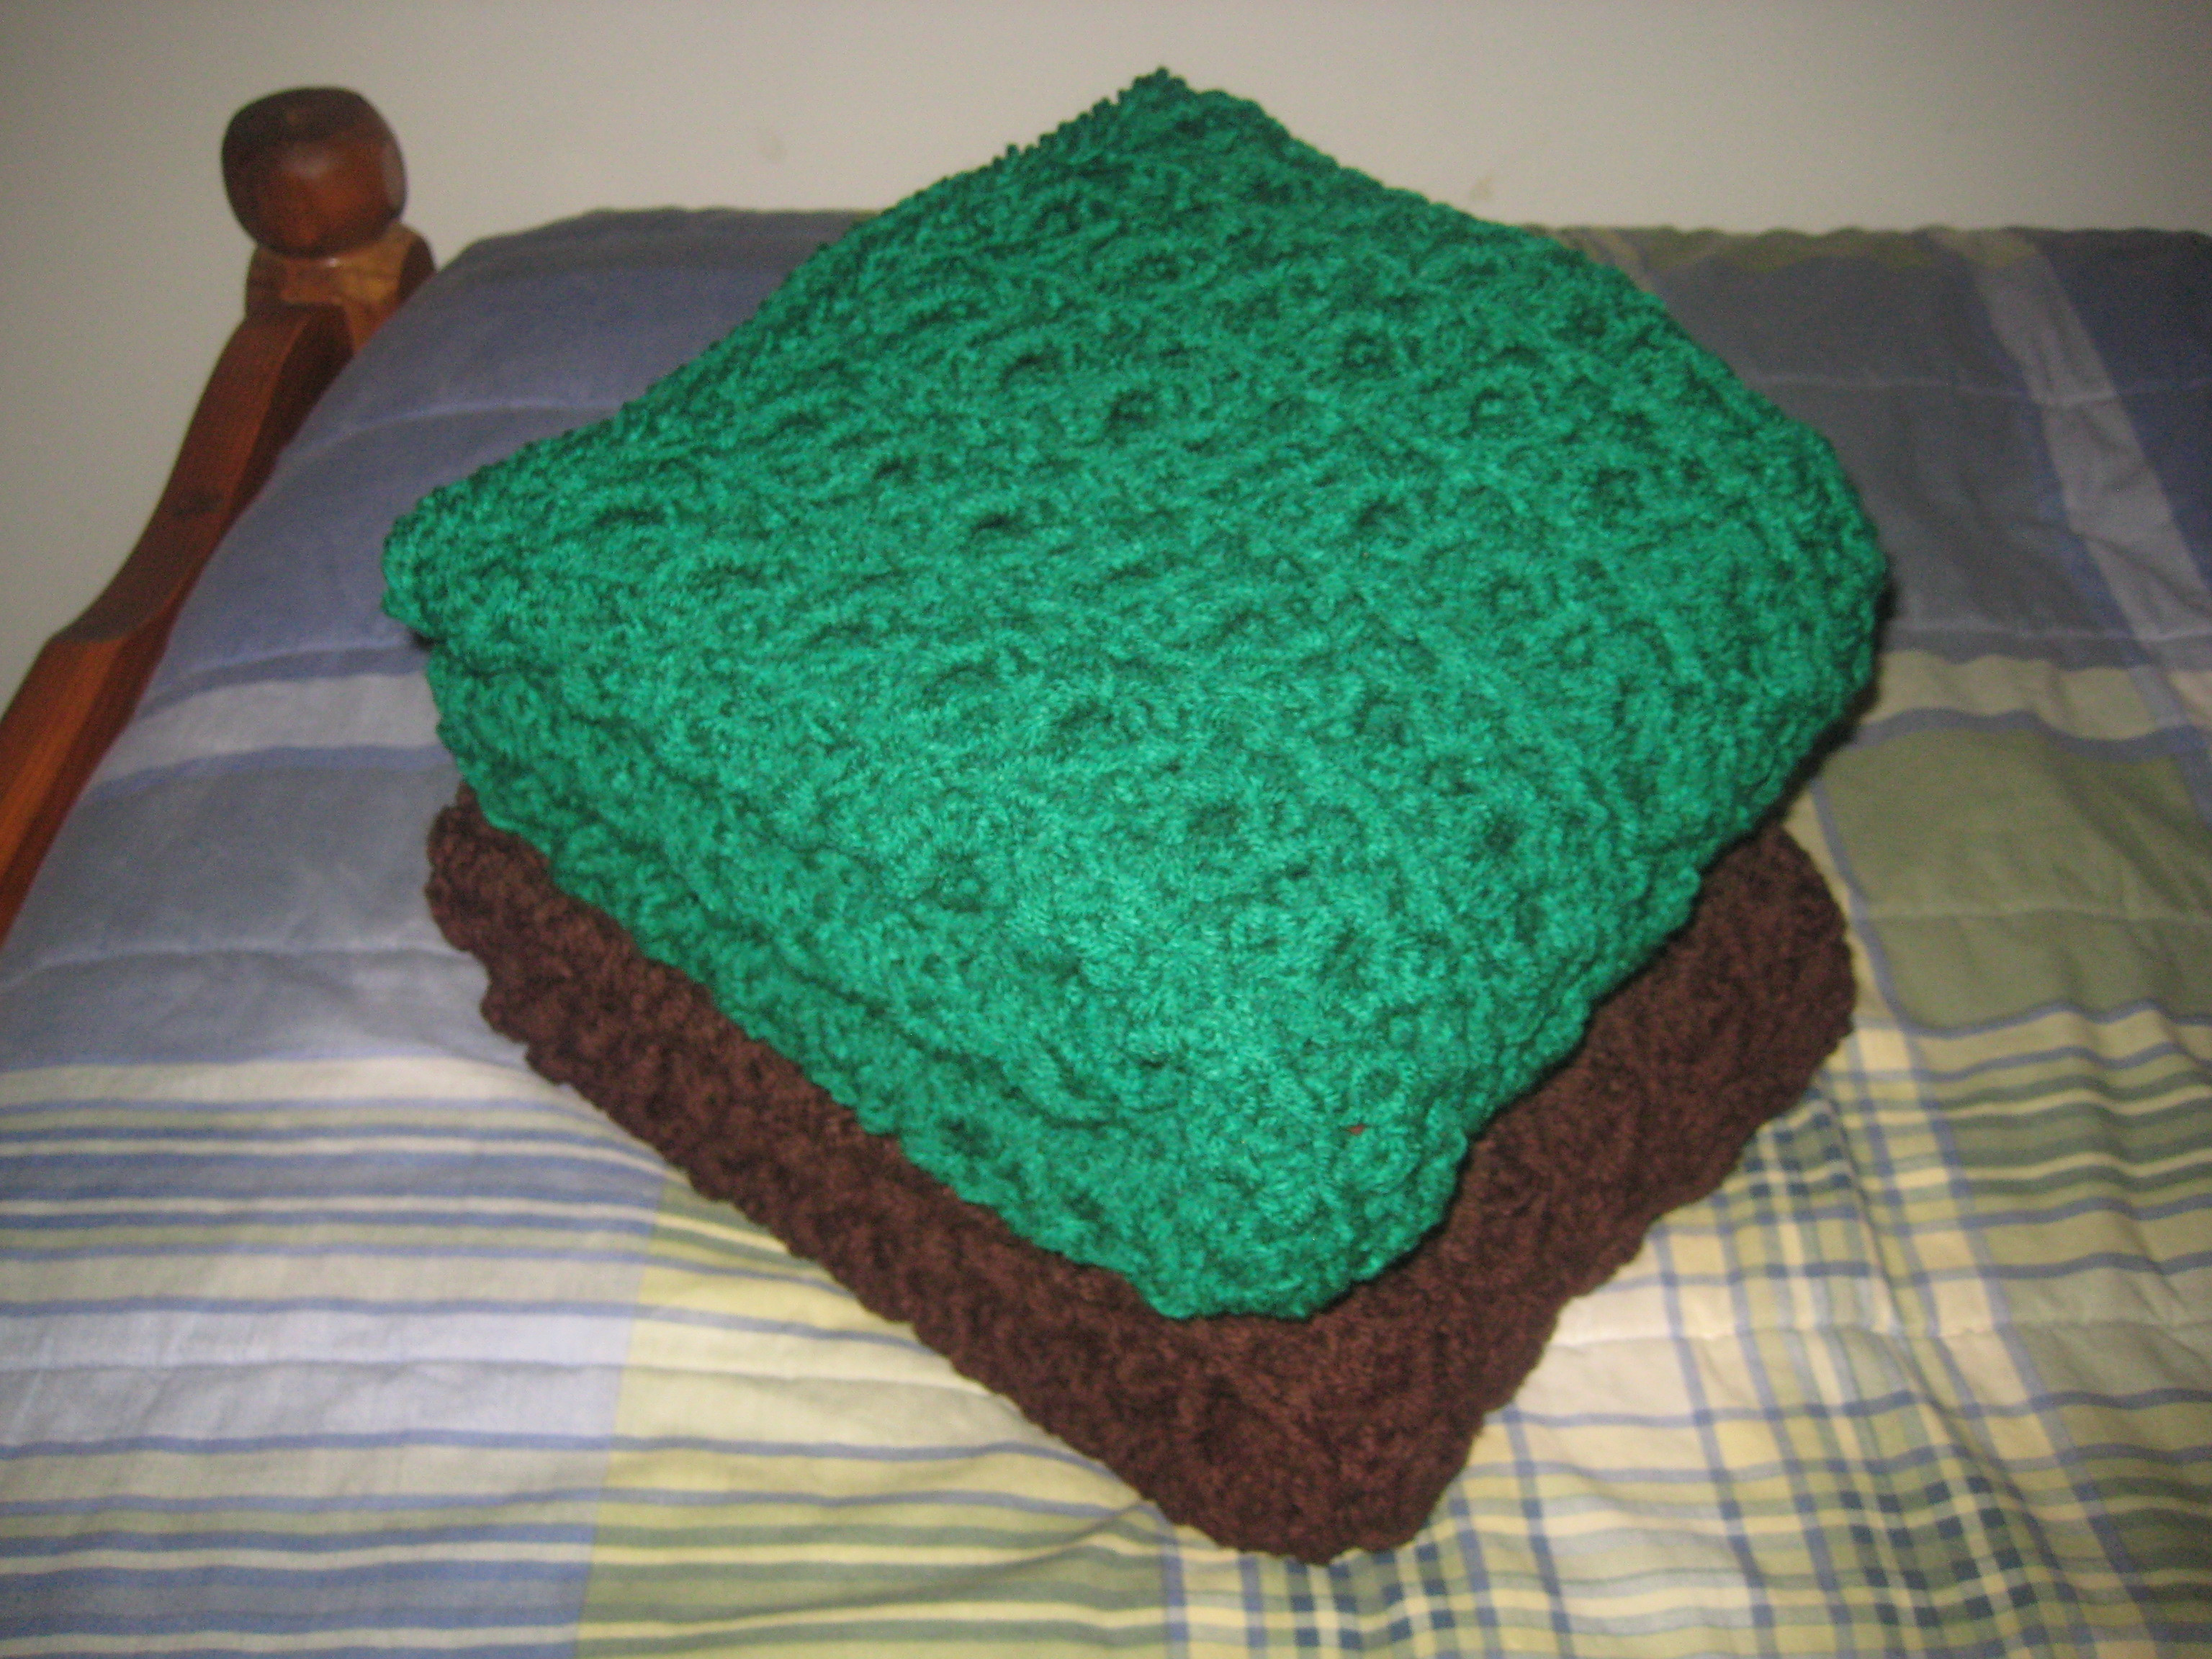 Best Of Lapghan – Yarning Over the Days Crochet Lapghan Of Superb 48 Images Crochet Lapghan